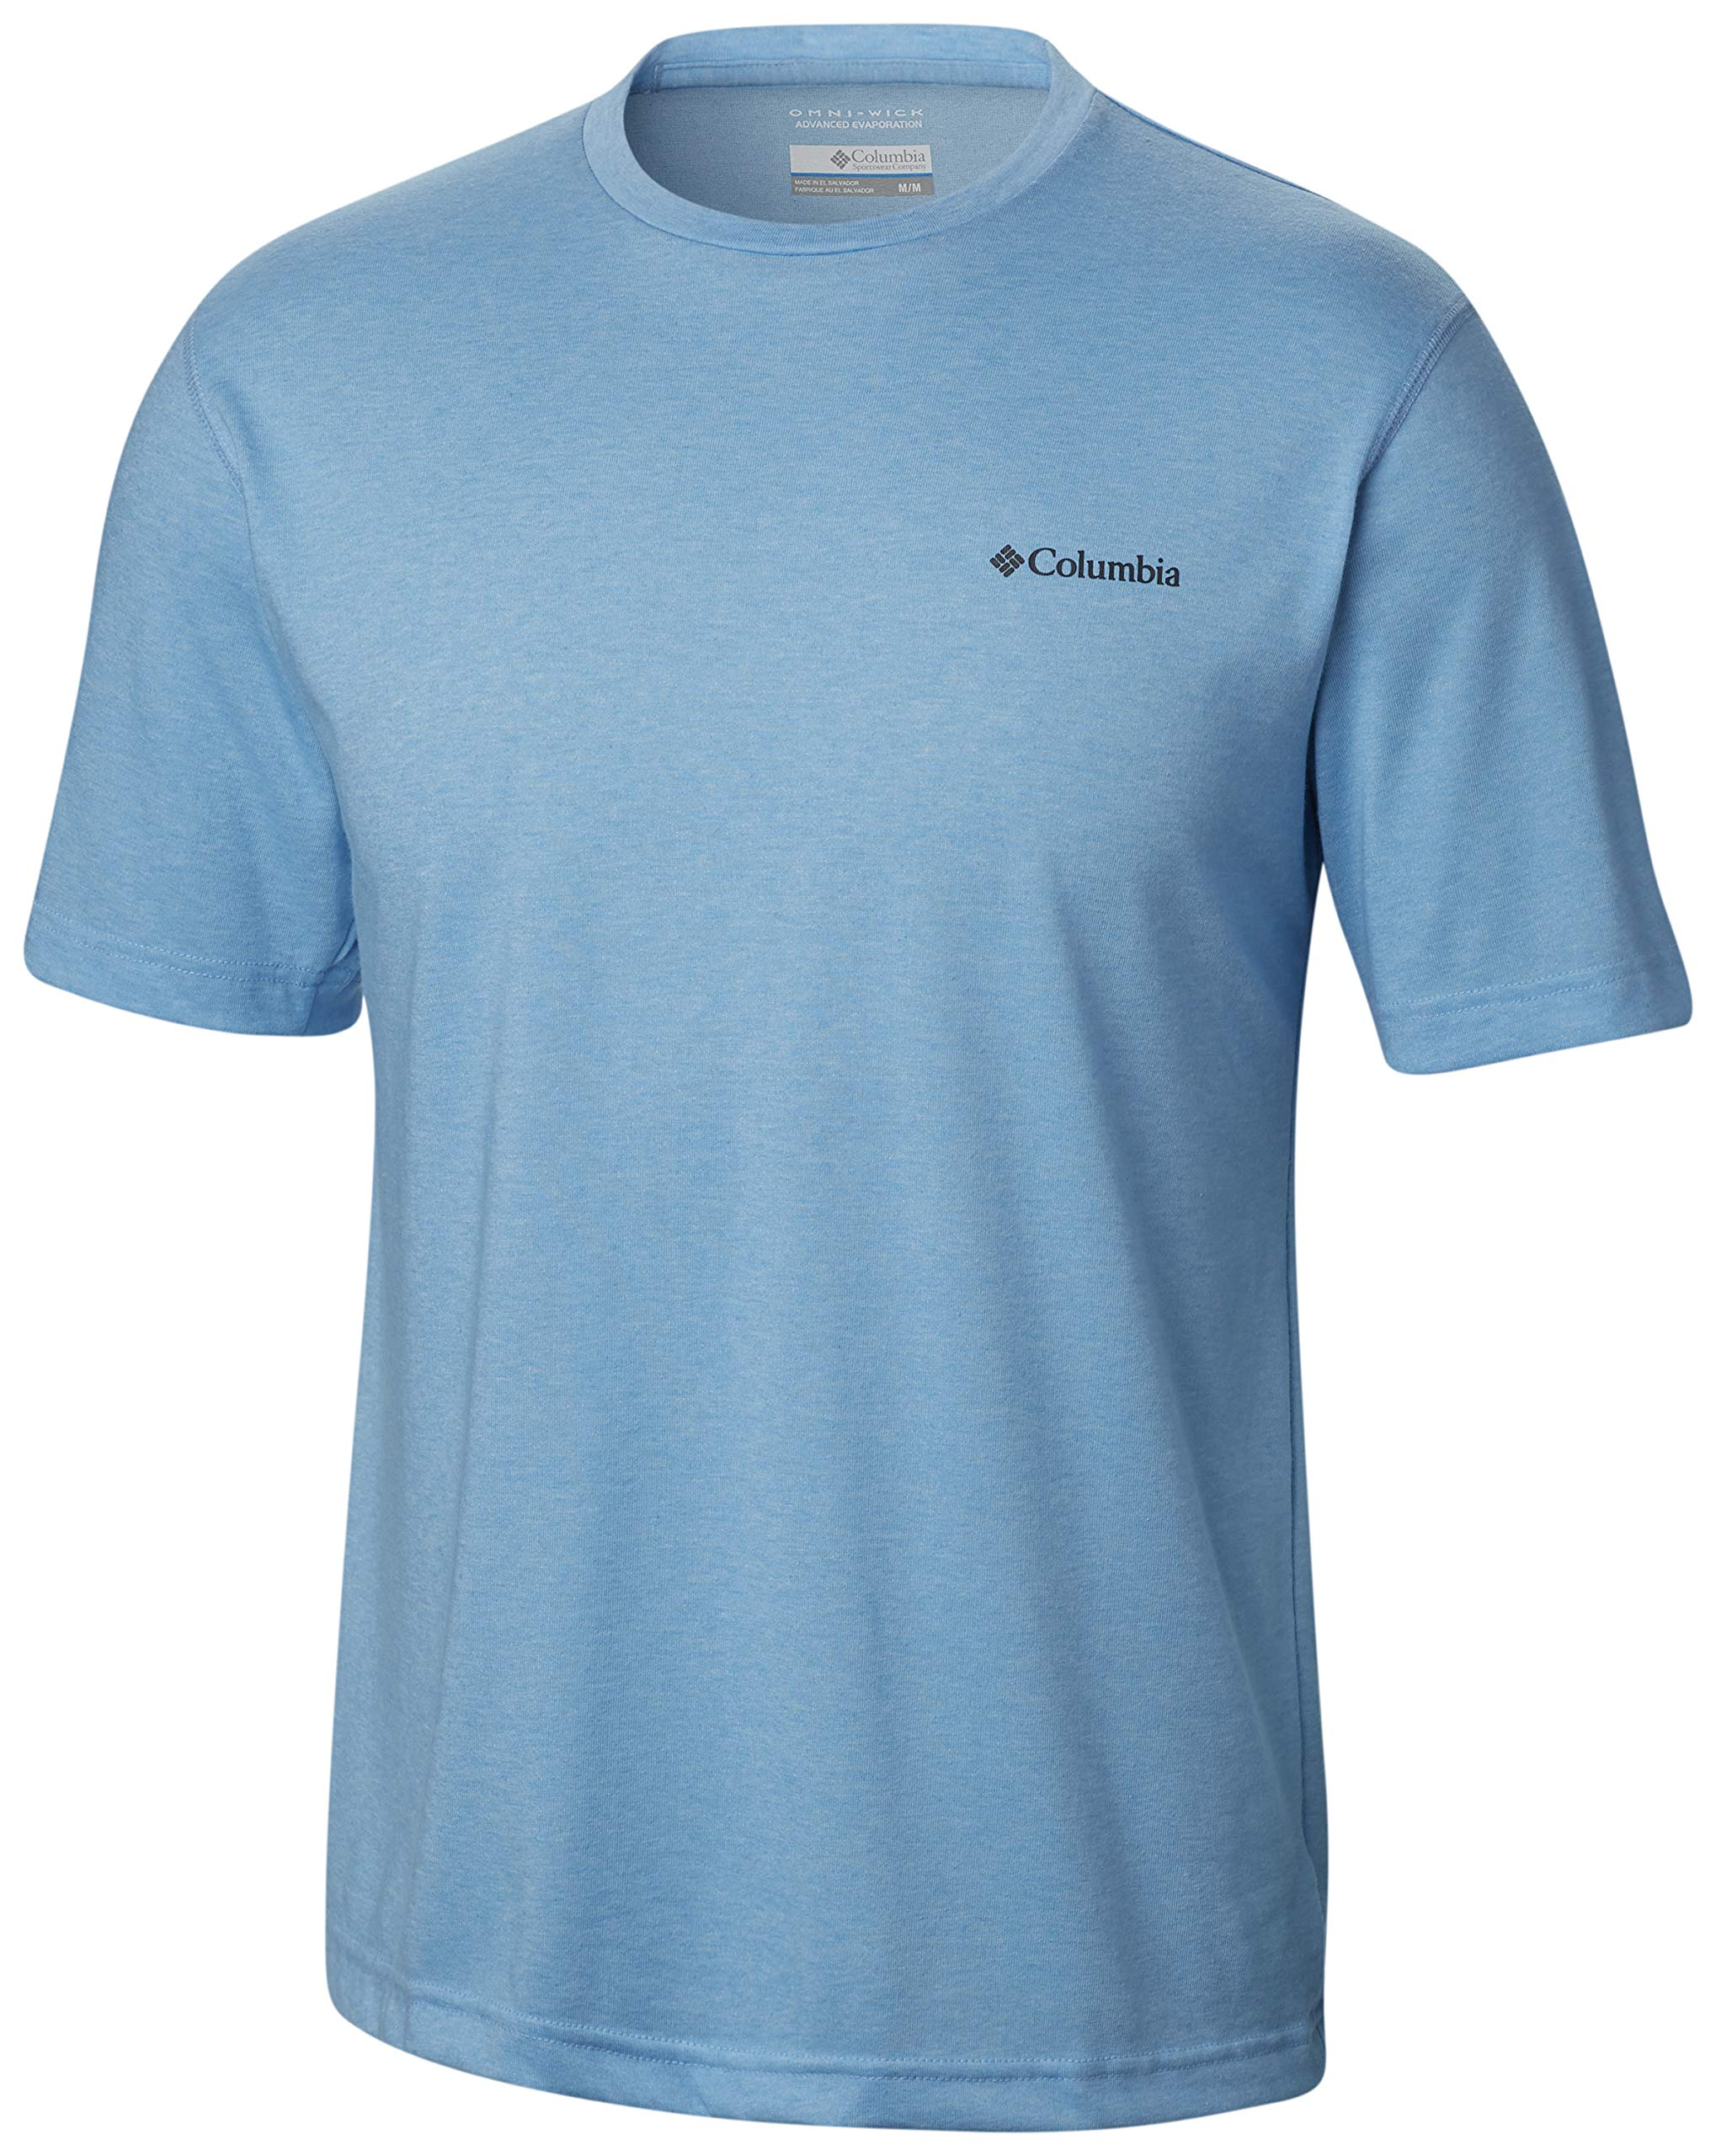 Columbia Men's Thistletown Park Crew, Sun Protection, Breathable, blue, Blue Sky Heather